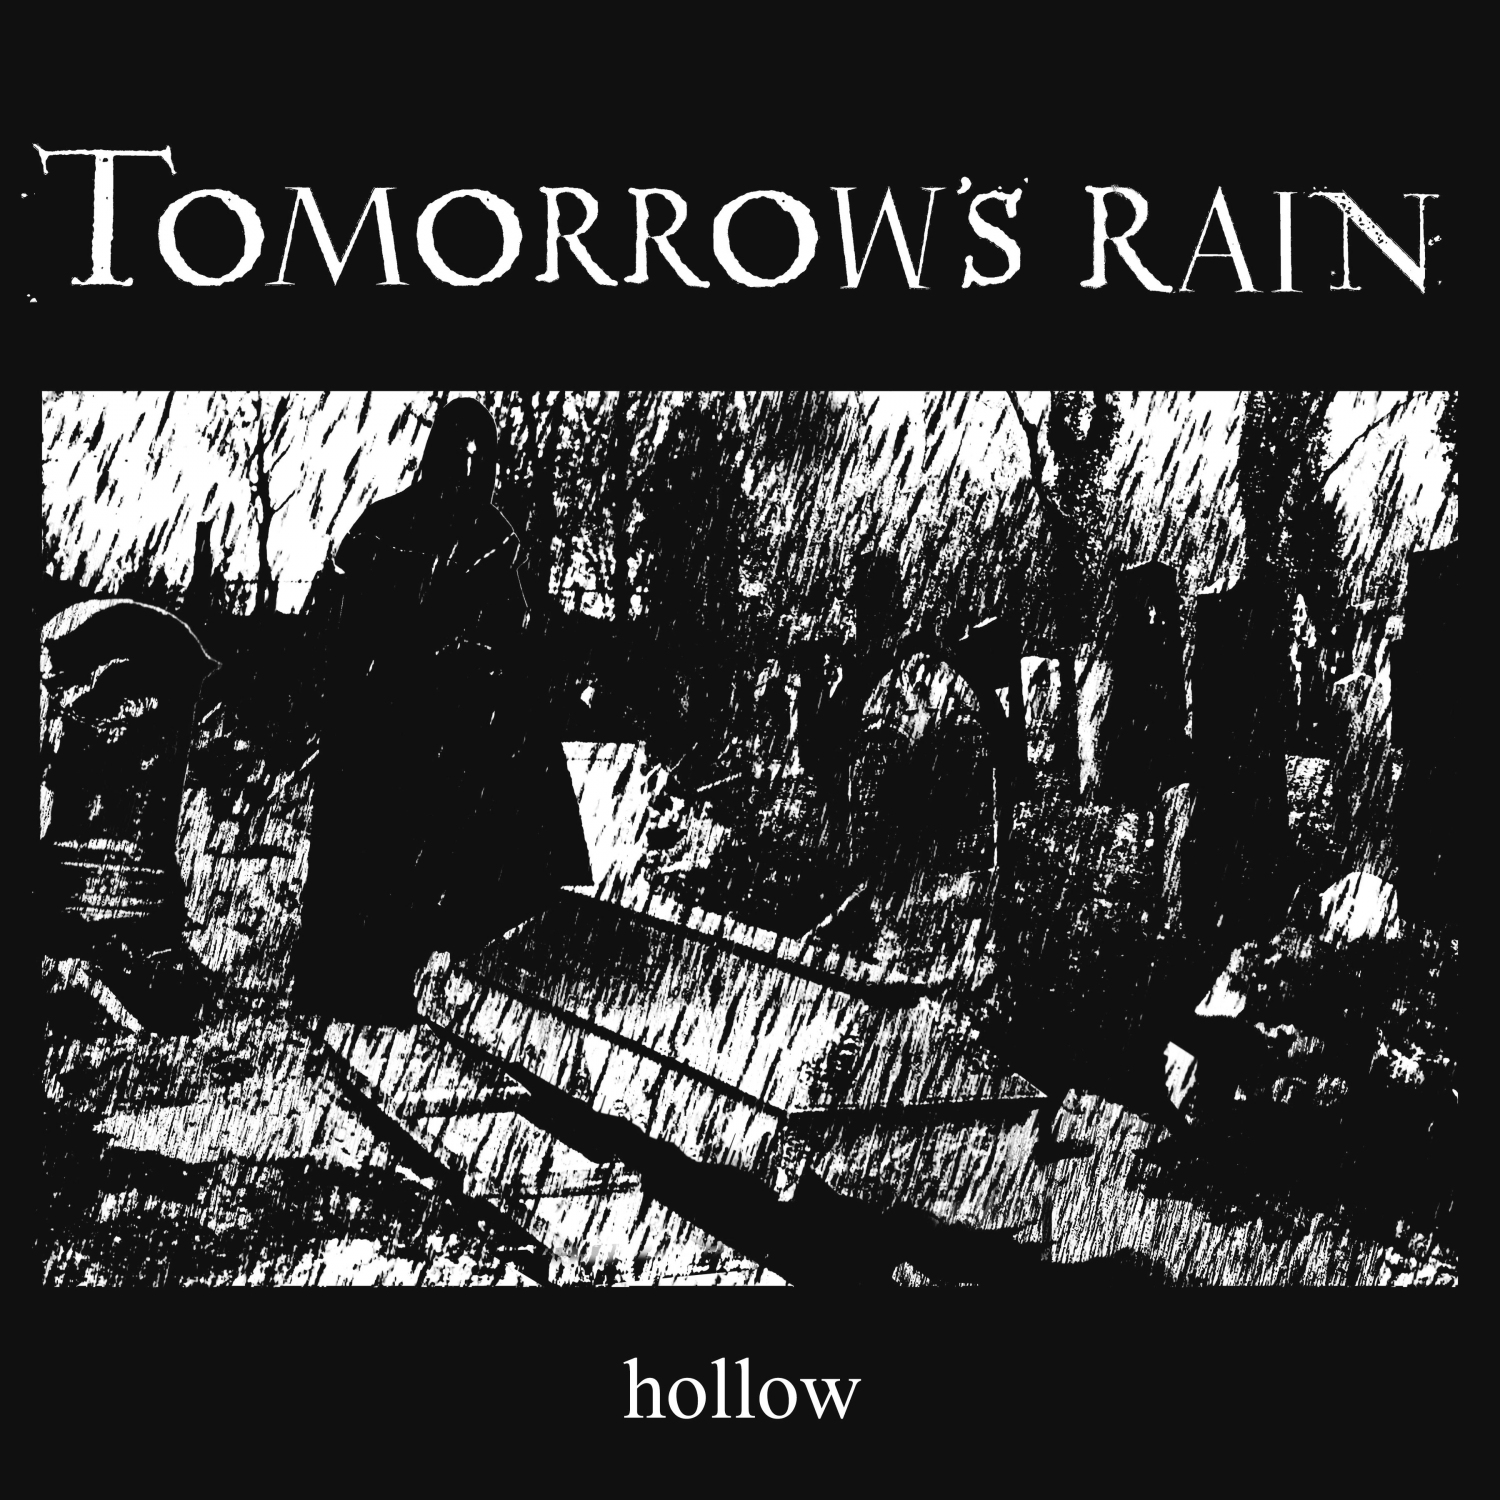 tomorrows-rain-hollow-ein-album-review